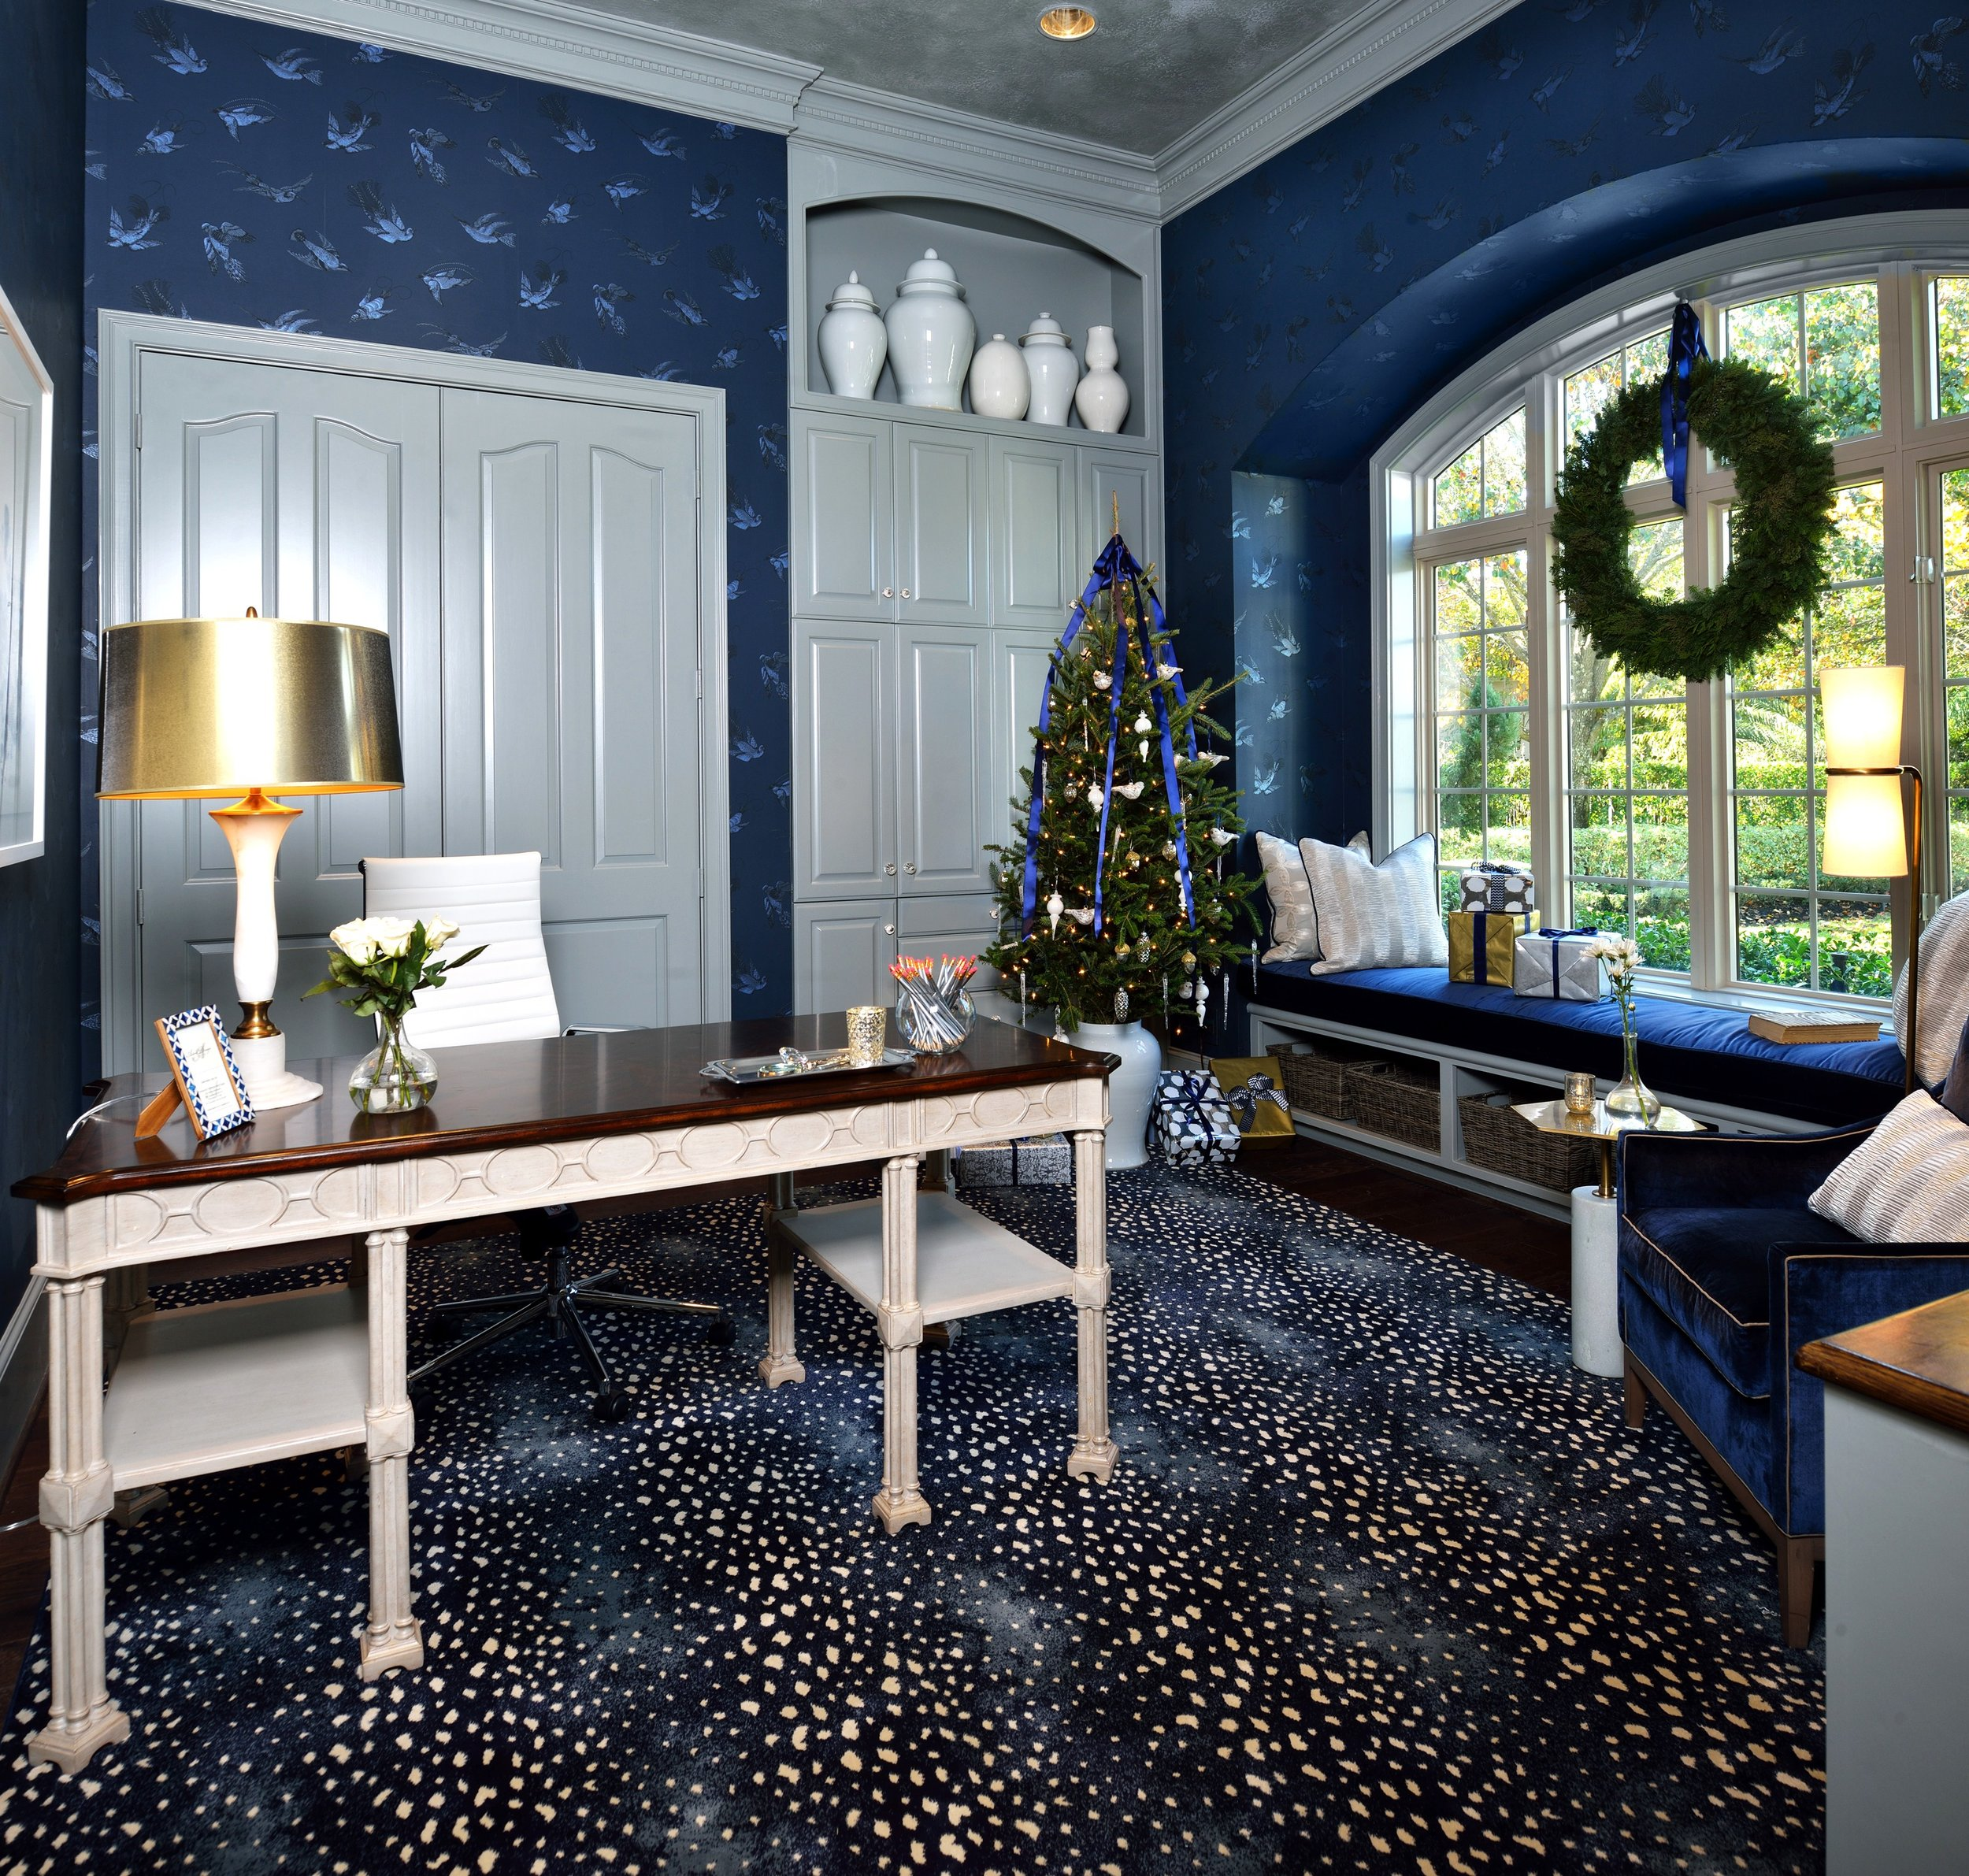 Holiday Showhouse Room, Woman's Home Office - Designer, Carla Aston | Photo by Miro Dvorscak #homeoffice #windowseat #christmasdecor #wreath #christmastree